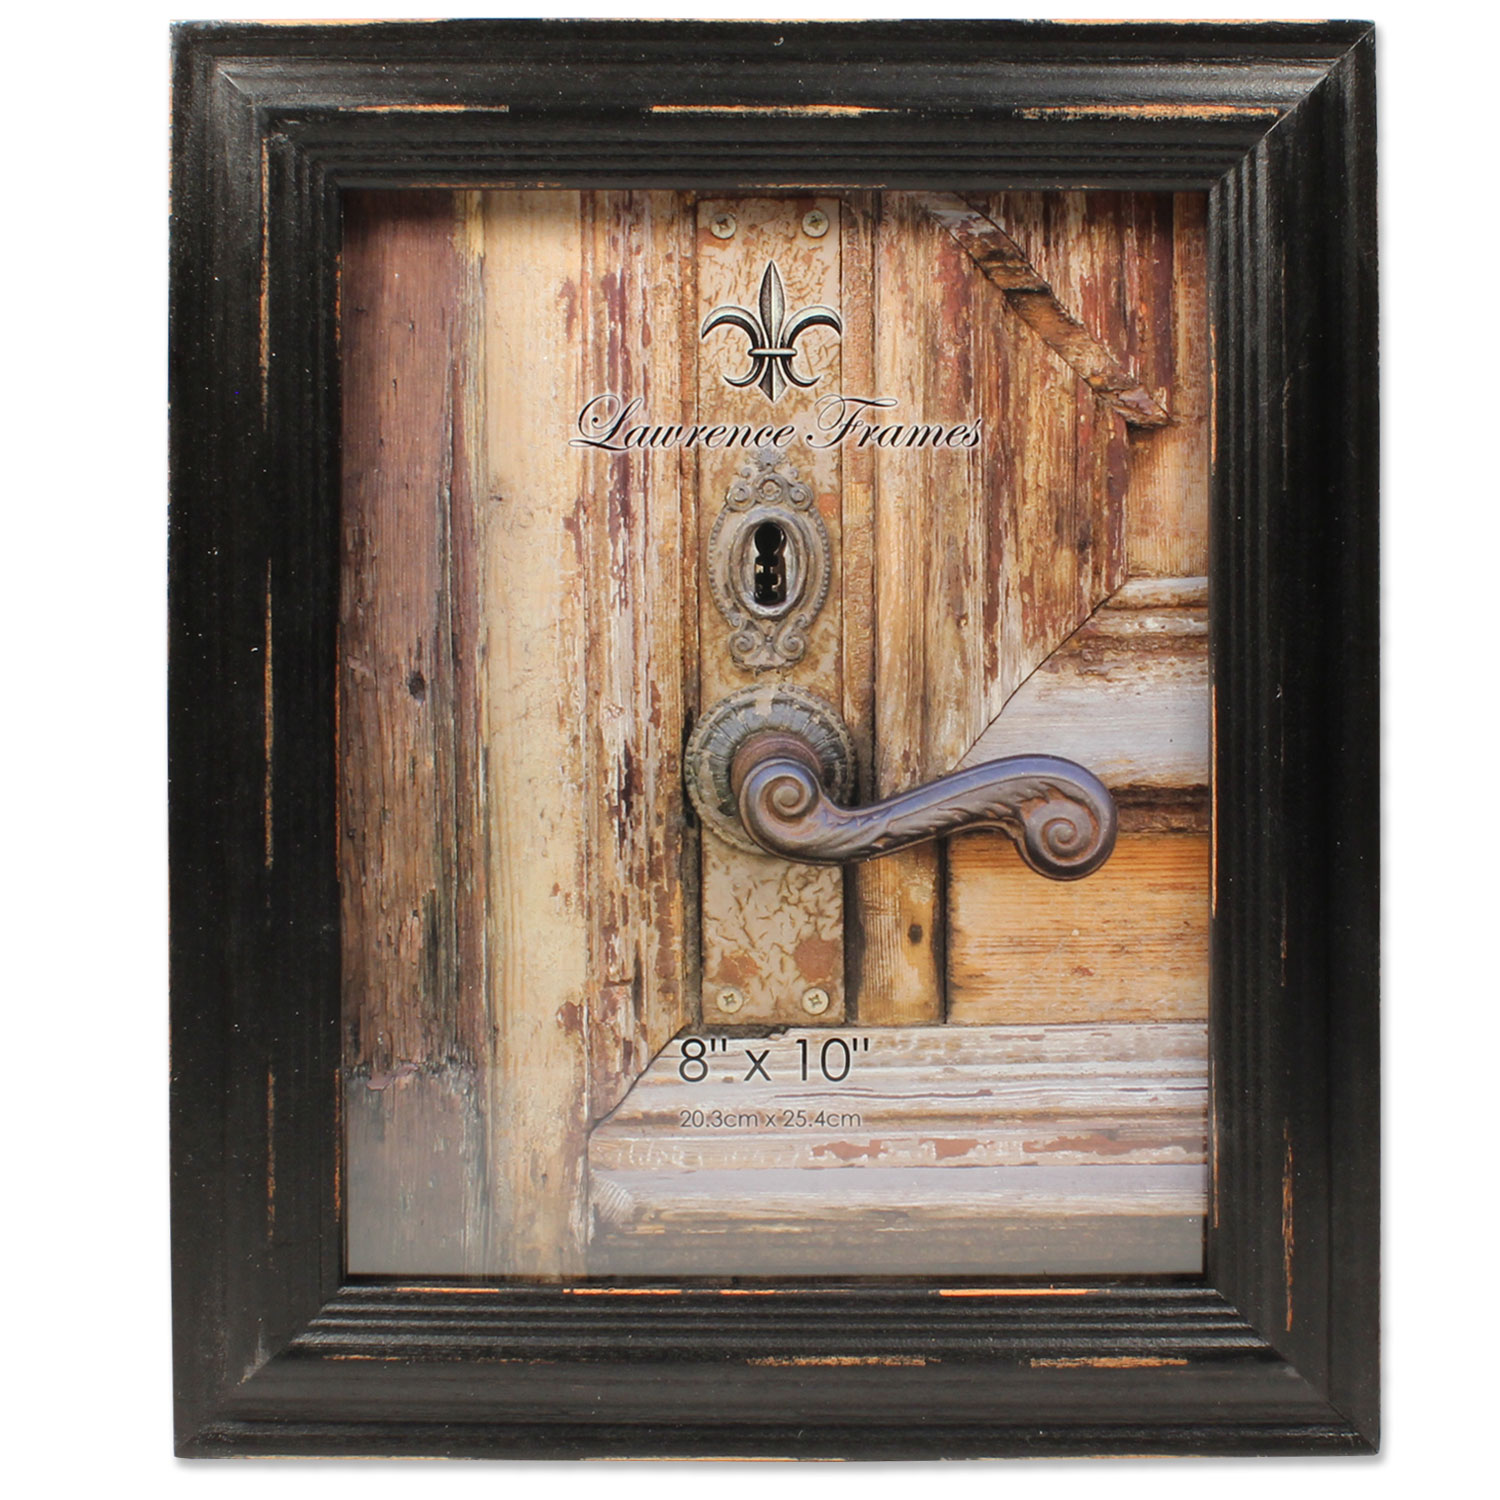 Click here to buy 8x10 Weathered Black Wood Picture Frame by Lawrence Frames.